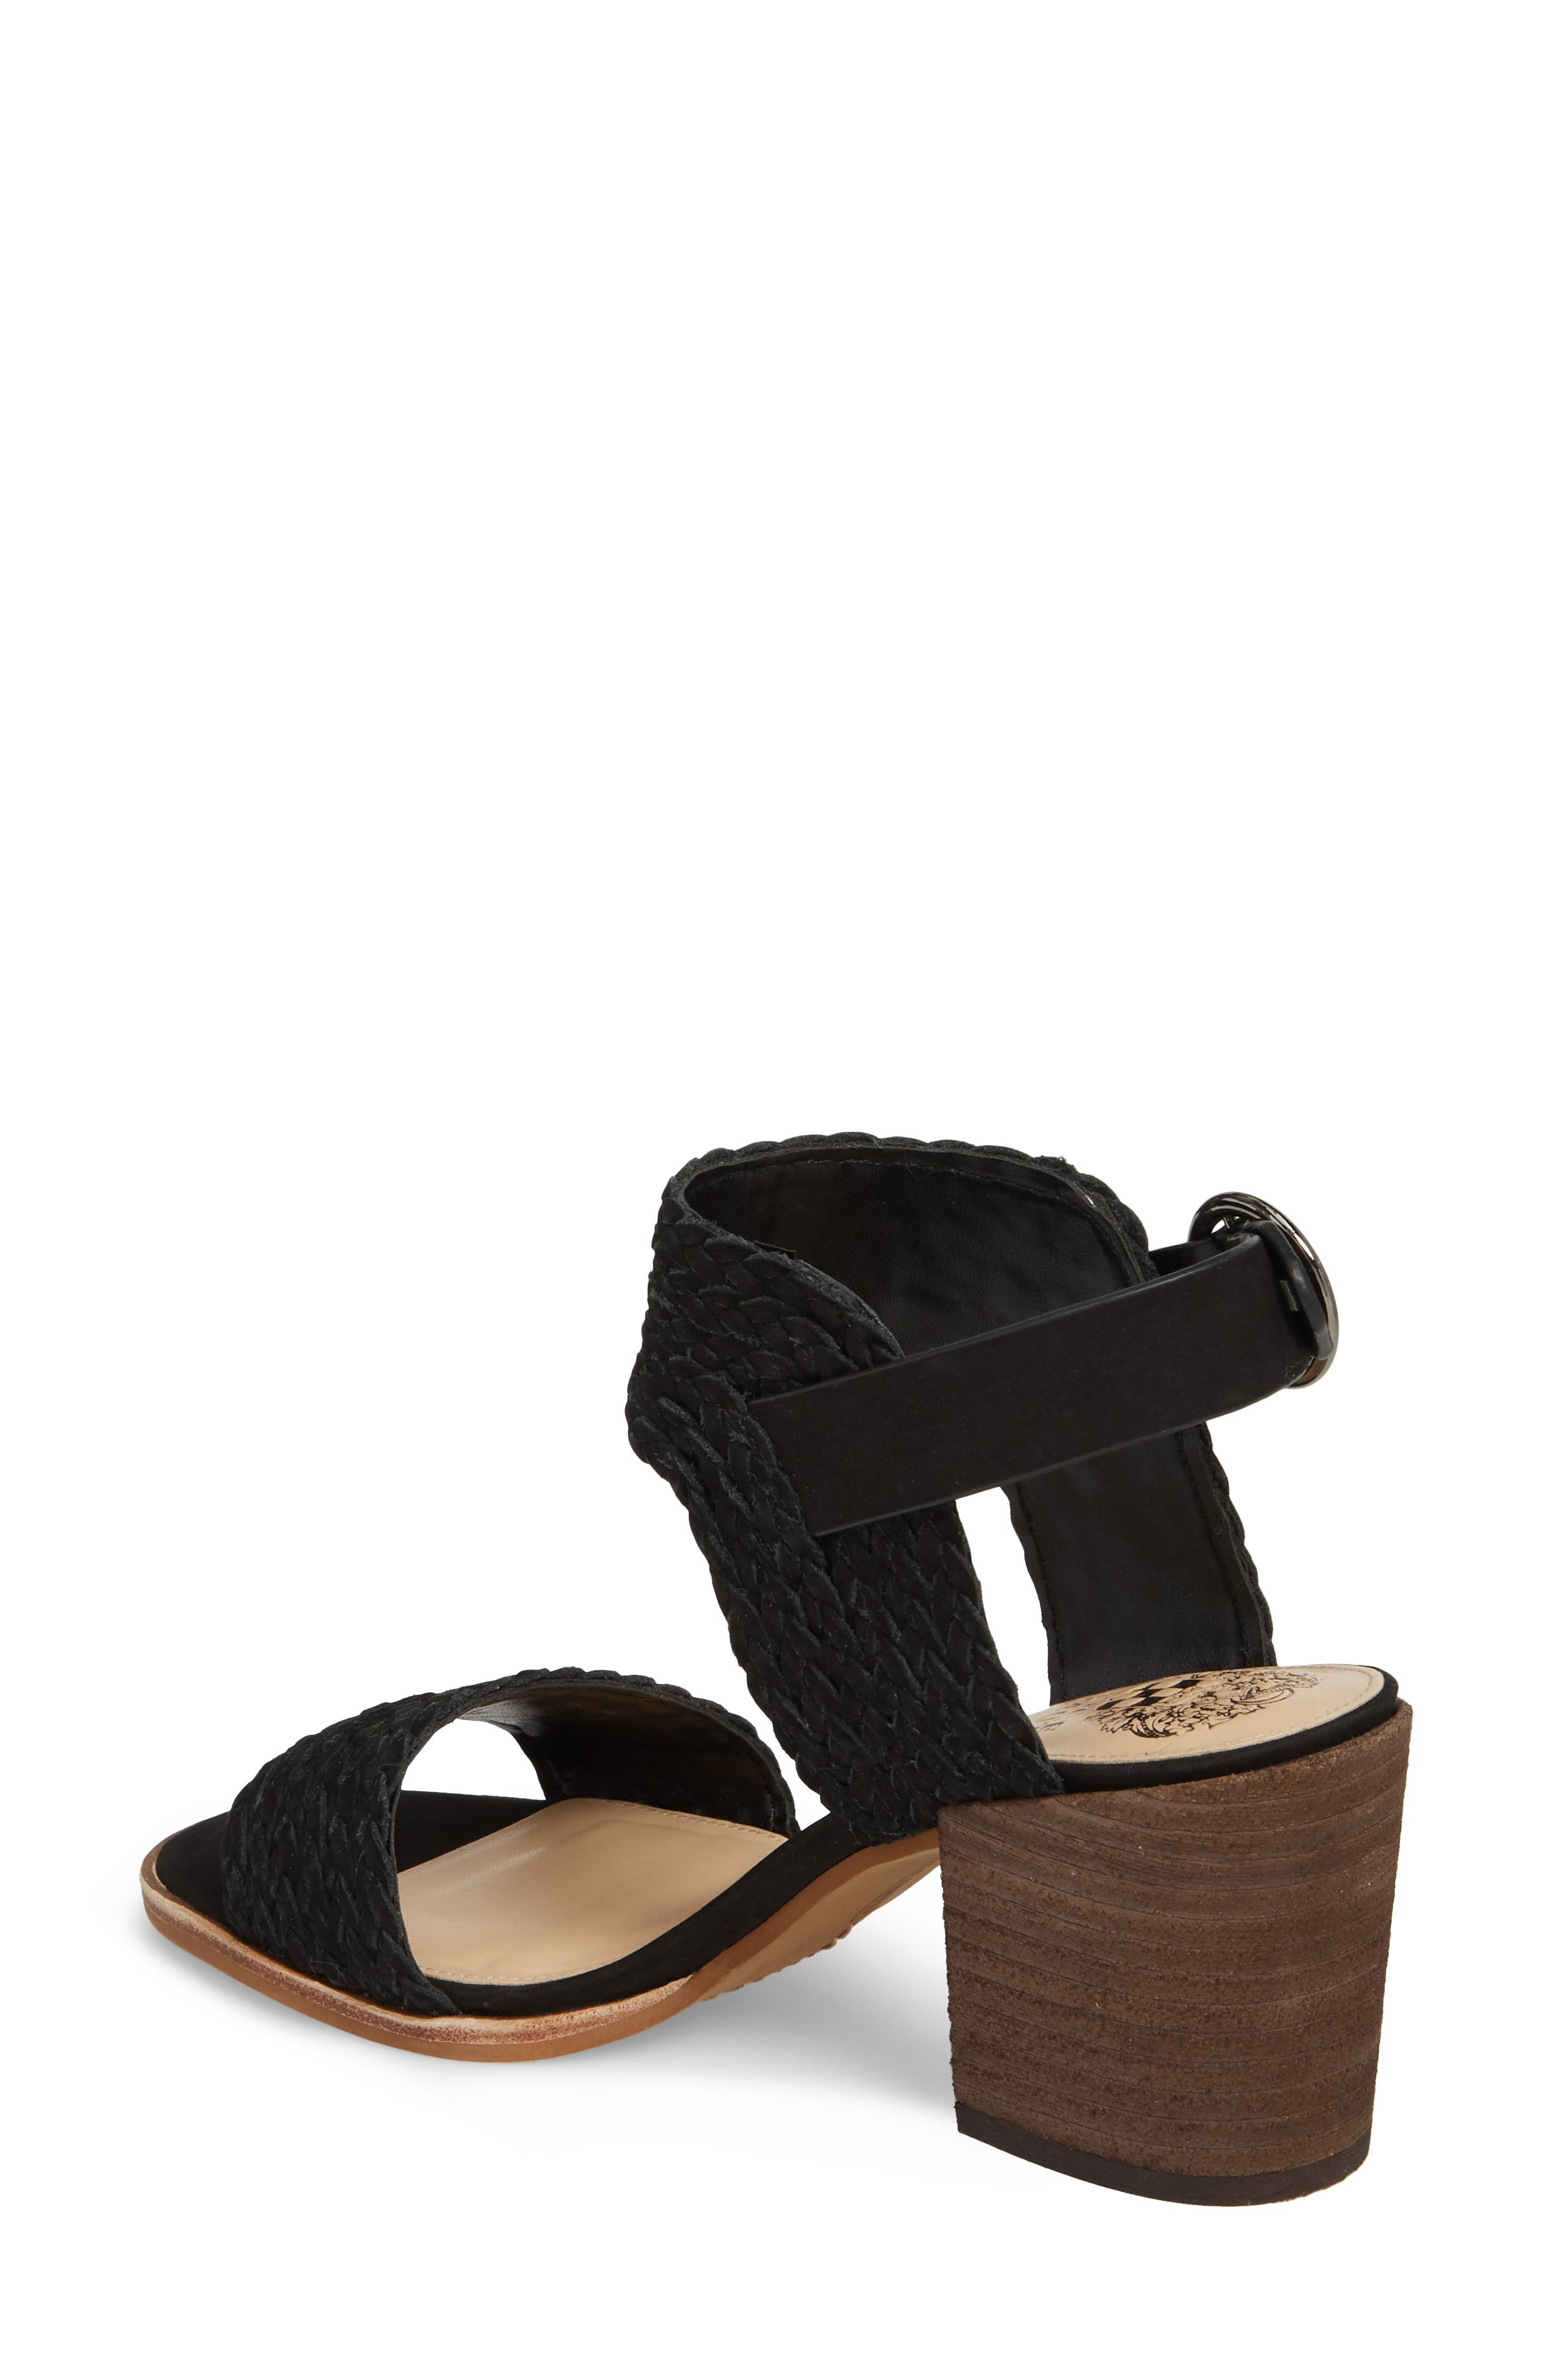 Kolema Sandal,                             Alternate thumbnail 2, color,                             BLACK LEATHER